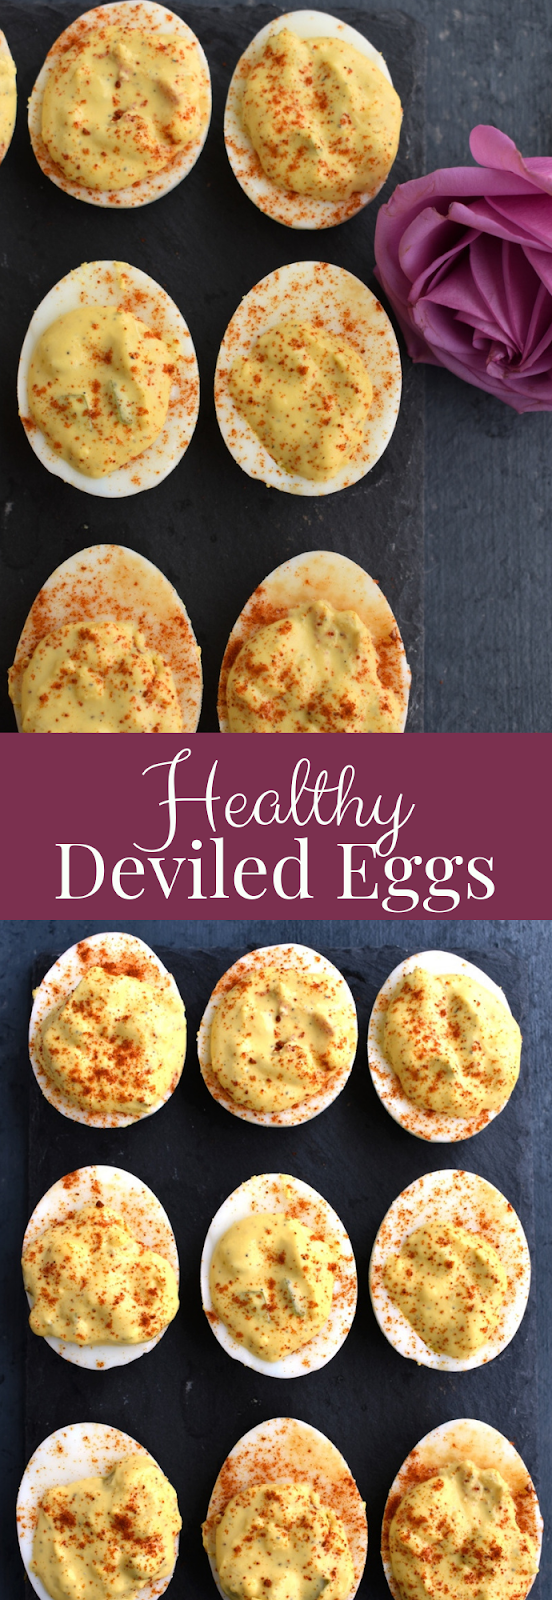 Picture of healthy deviled eggs